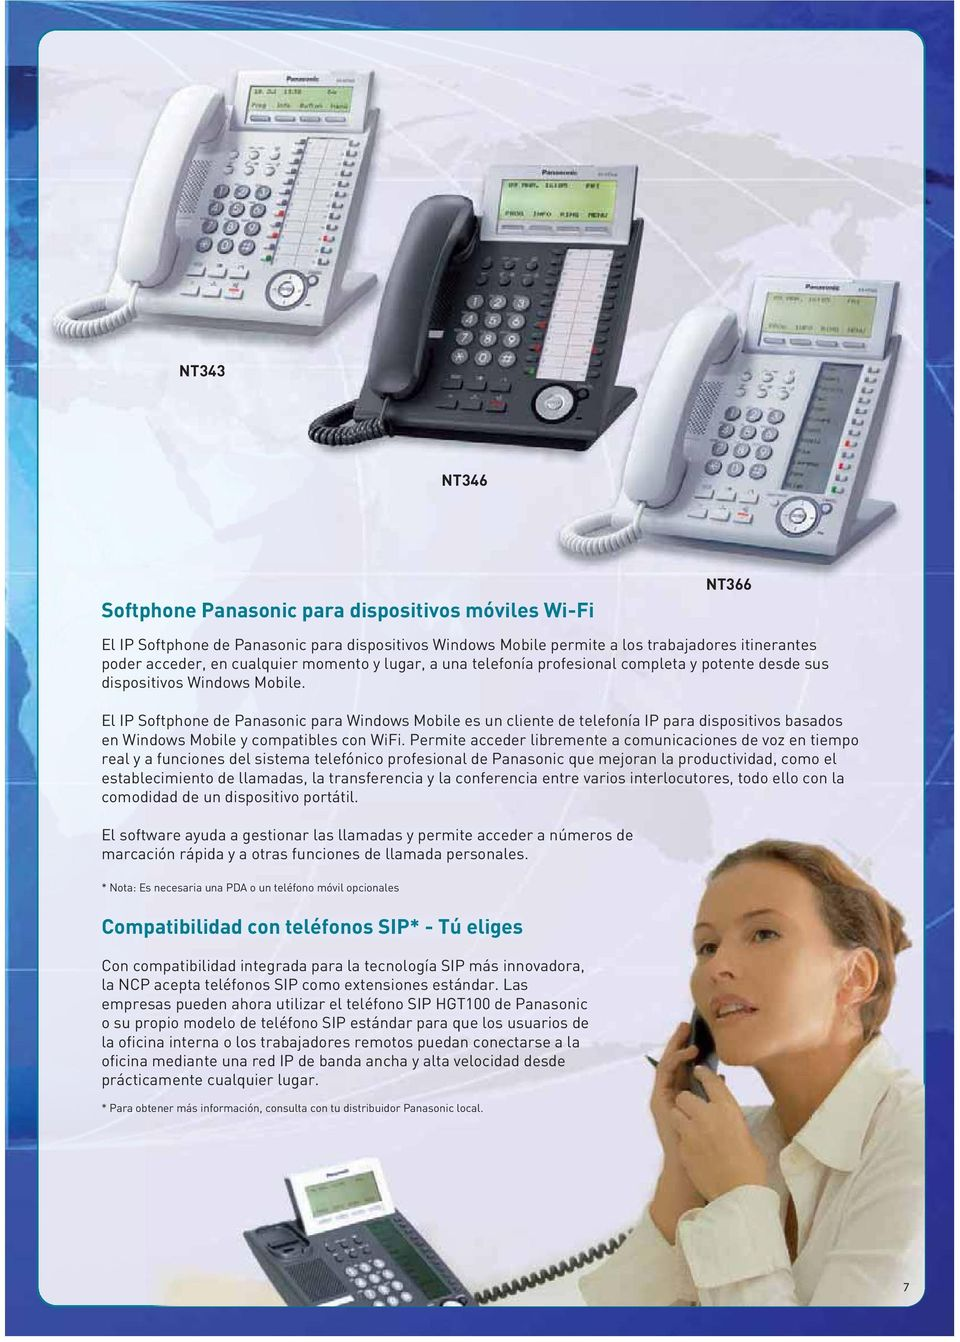 El IP Softphone de Panasonic para Windows Mobile es un cliente de telefonía IP para dispositivos basados en Windows Mobile y compatibles con WiFi.